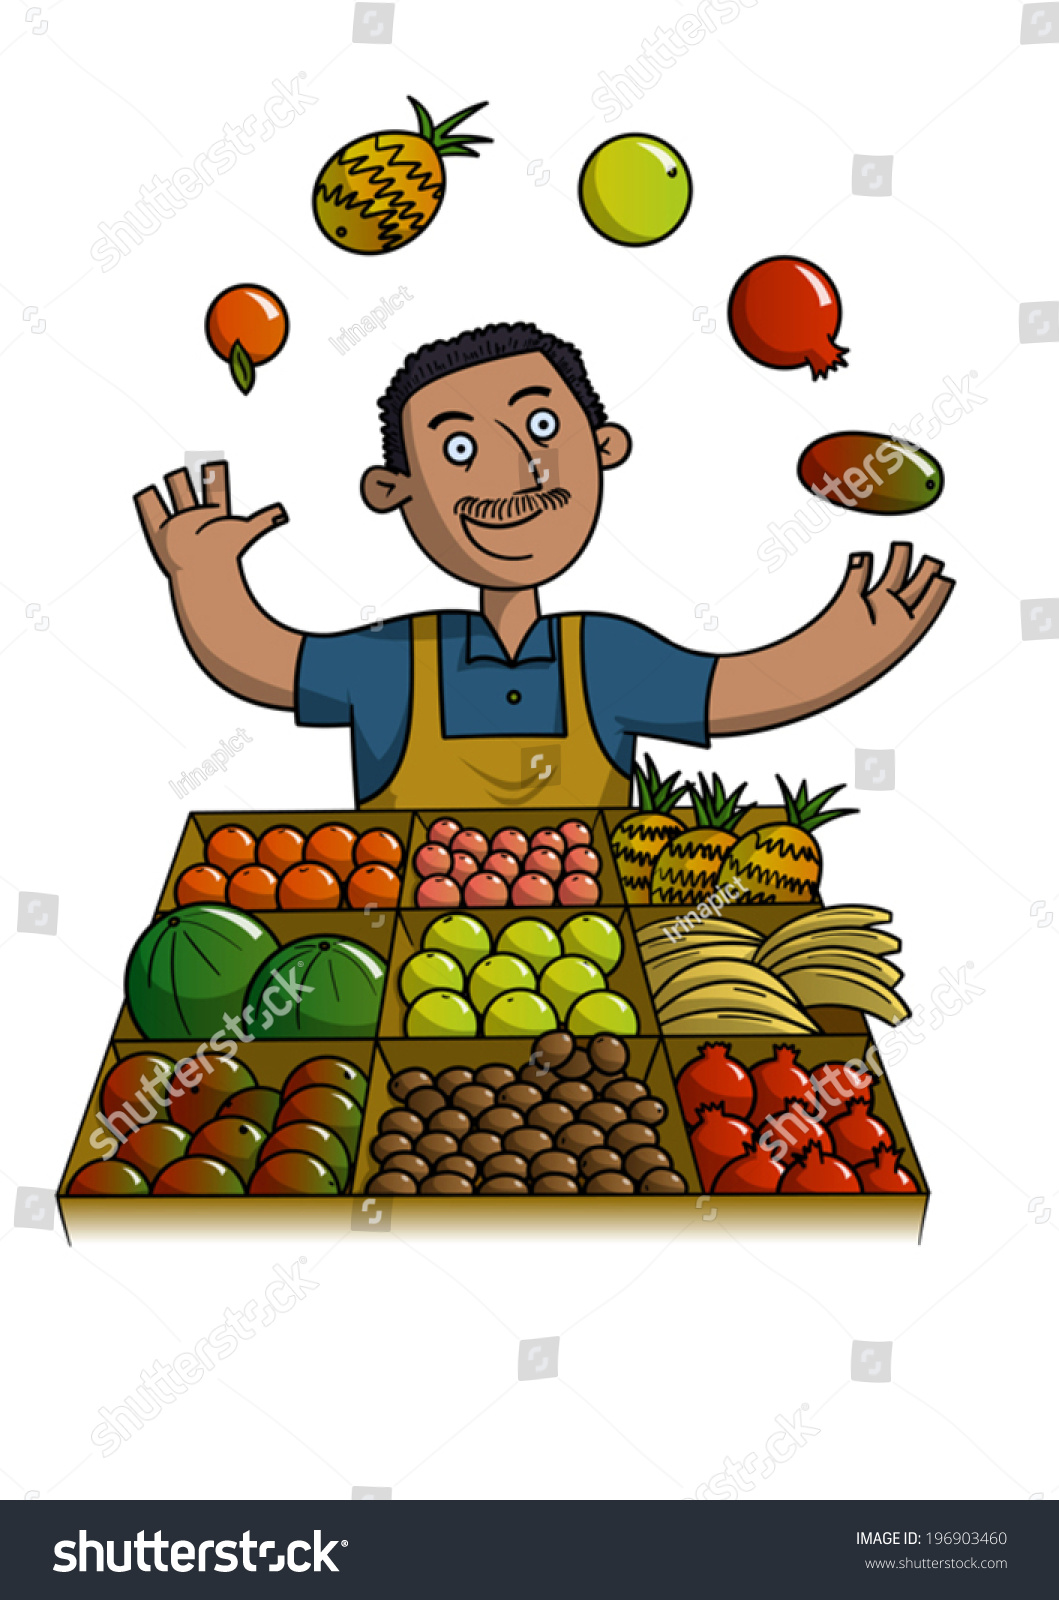 managerial effectiveness of fruit sellers Food and beverage_operations  roquefort 42 vegetables root leaf brassicas shoot fruit bulb squash pods spinach cauliflower fennel avocado garlic.